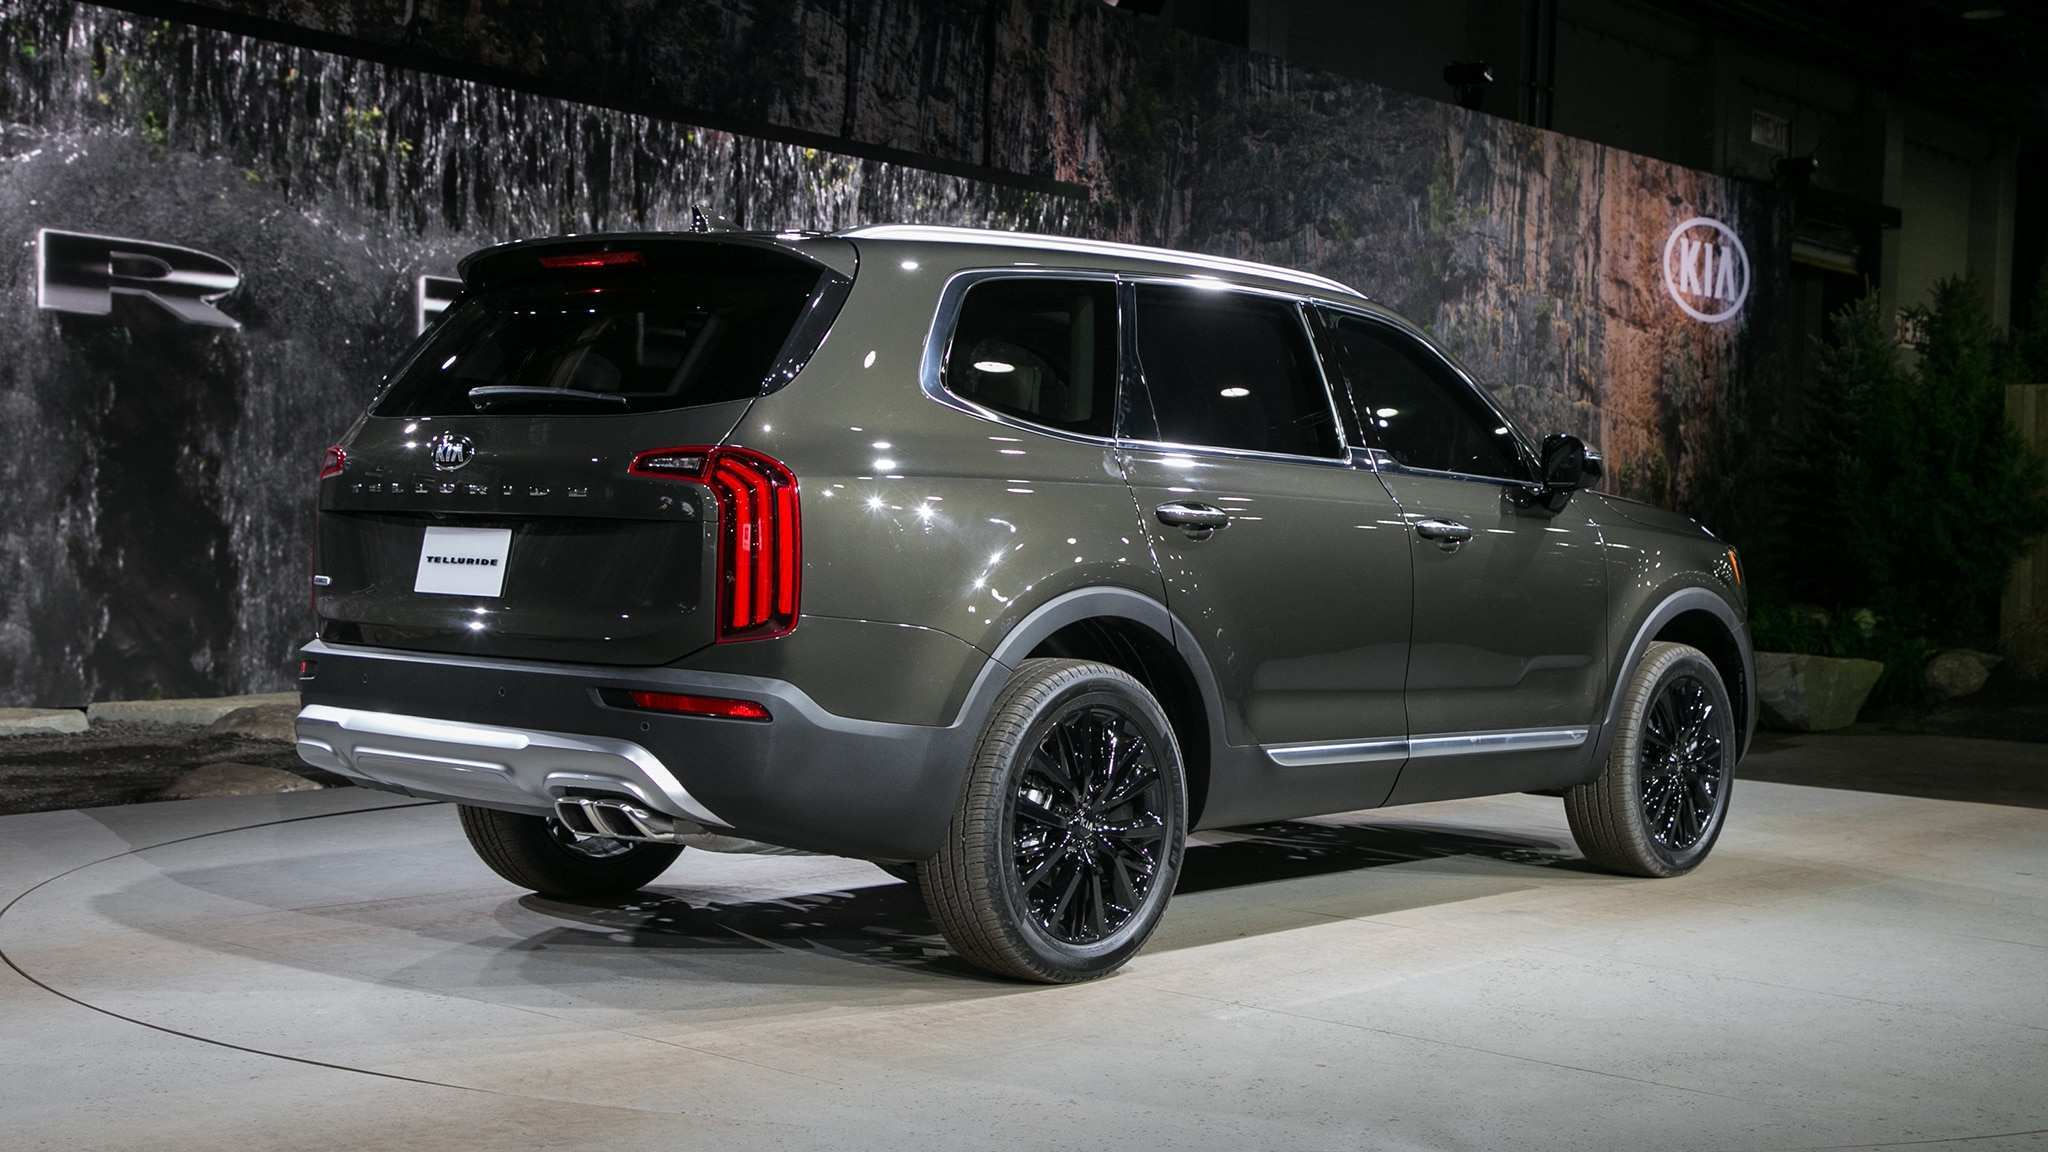 52 The Best Kia Telluride 2020 Mpg Spesification